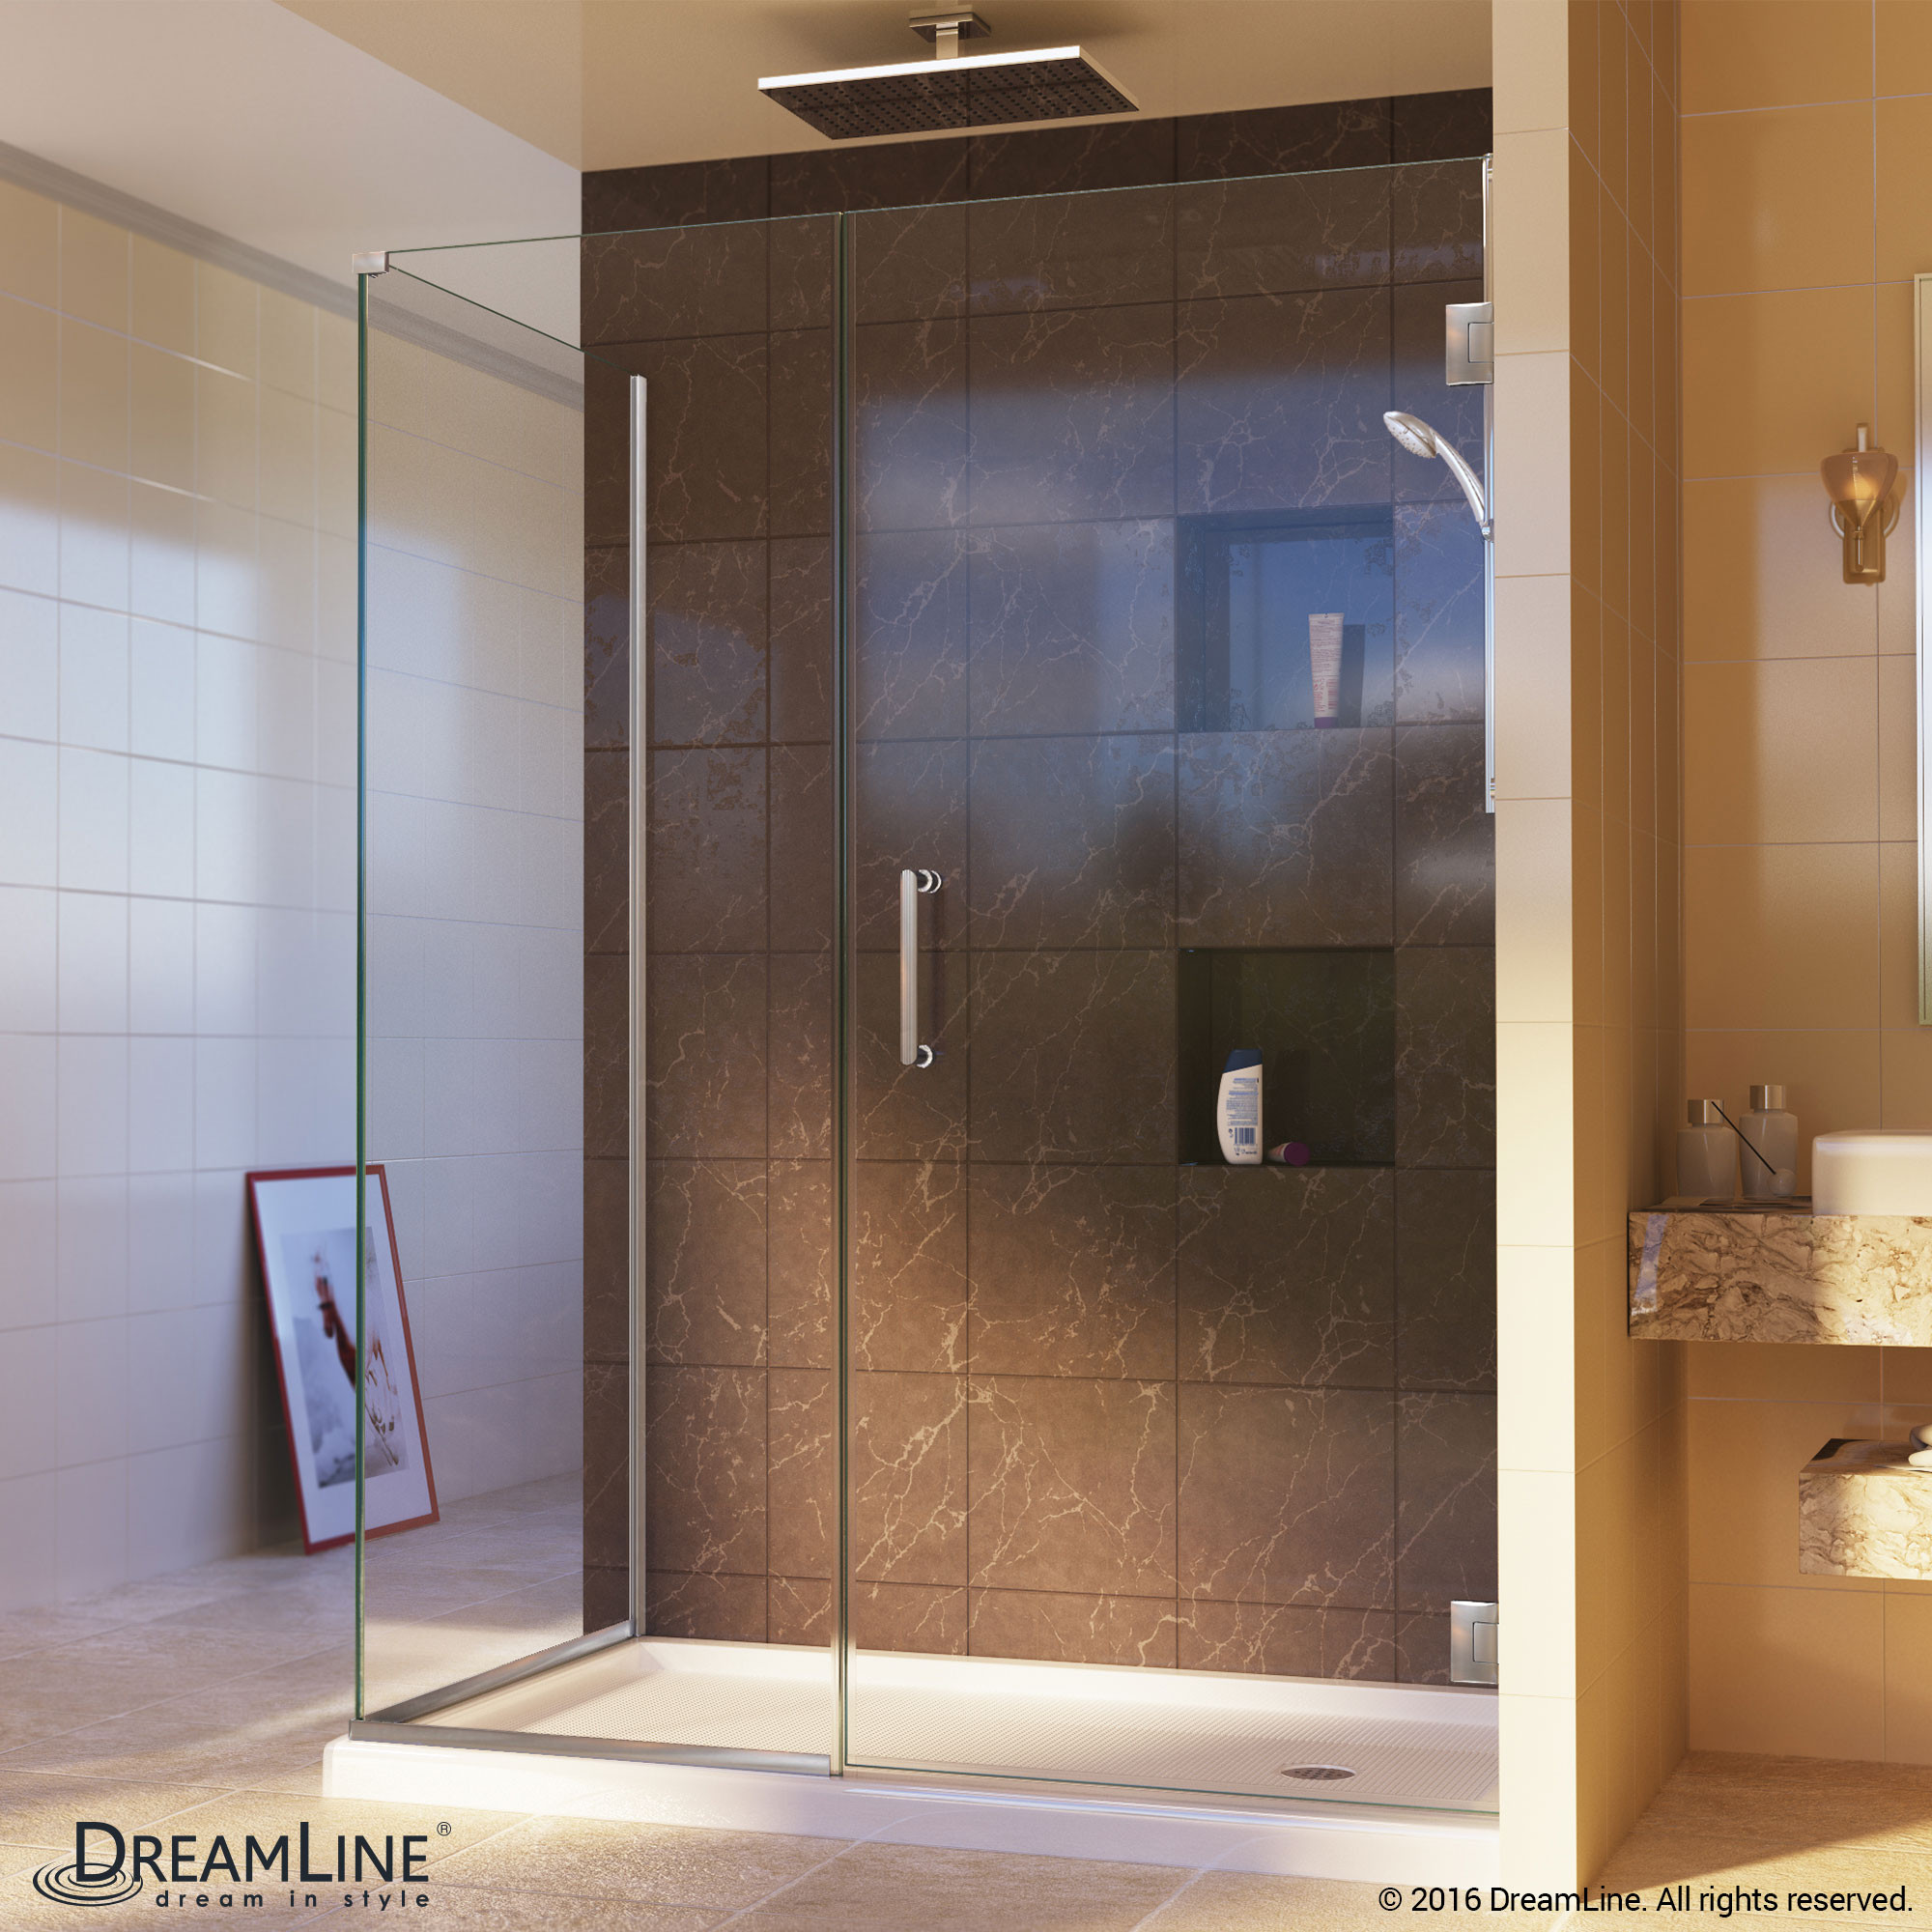 DreamLine SHEN-24380300-04 Unidoor Plus Hinged Shower Enclosure In Brushed Nickel Finish Hardware